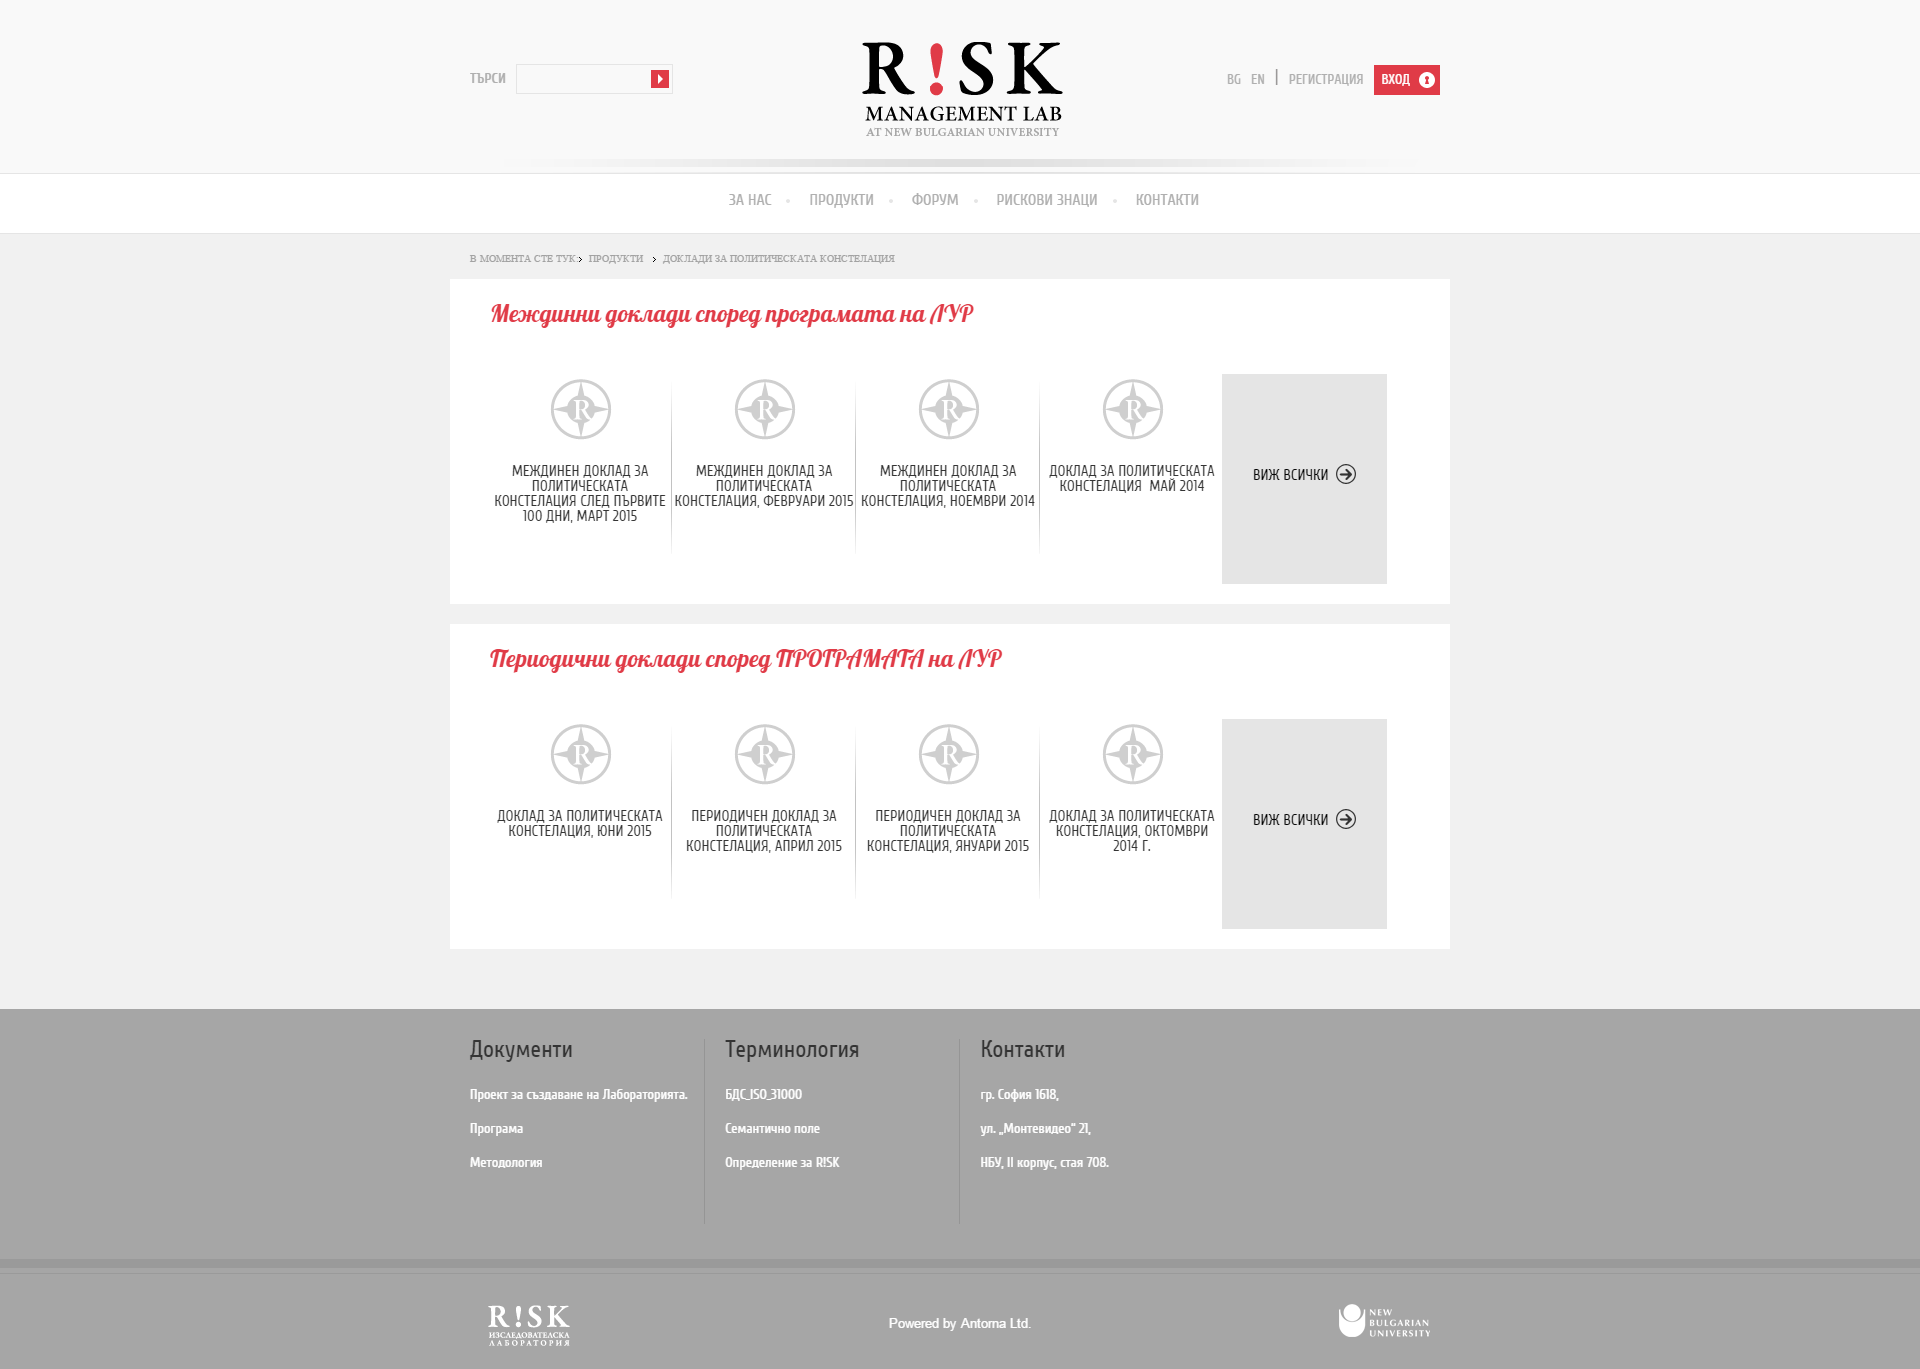 risk management lab 1 Itis 3102 introduction to cryptography and security risk management search this site welcome to home page assignment chapter 1 cipher text 1  lab 1 outcome.